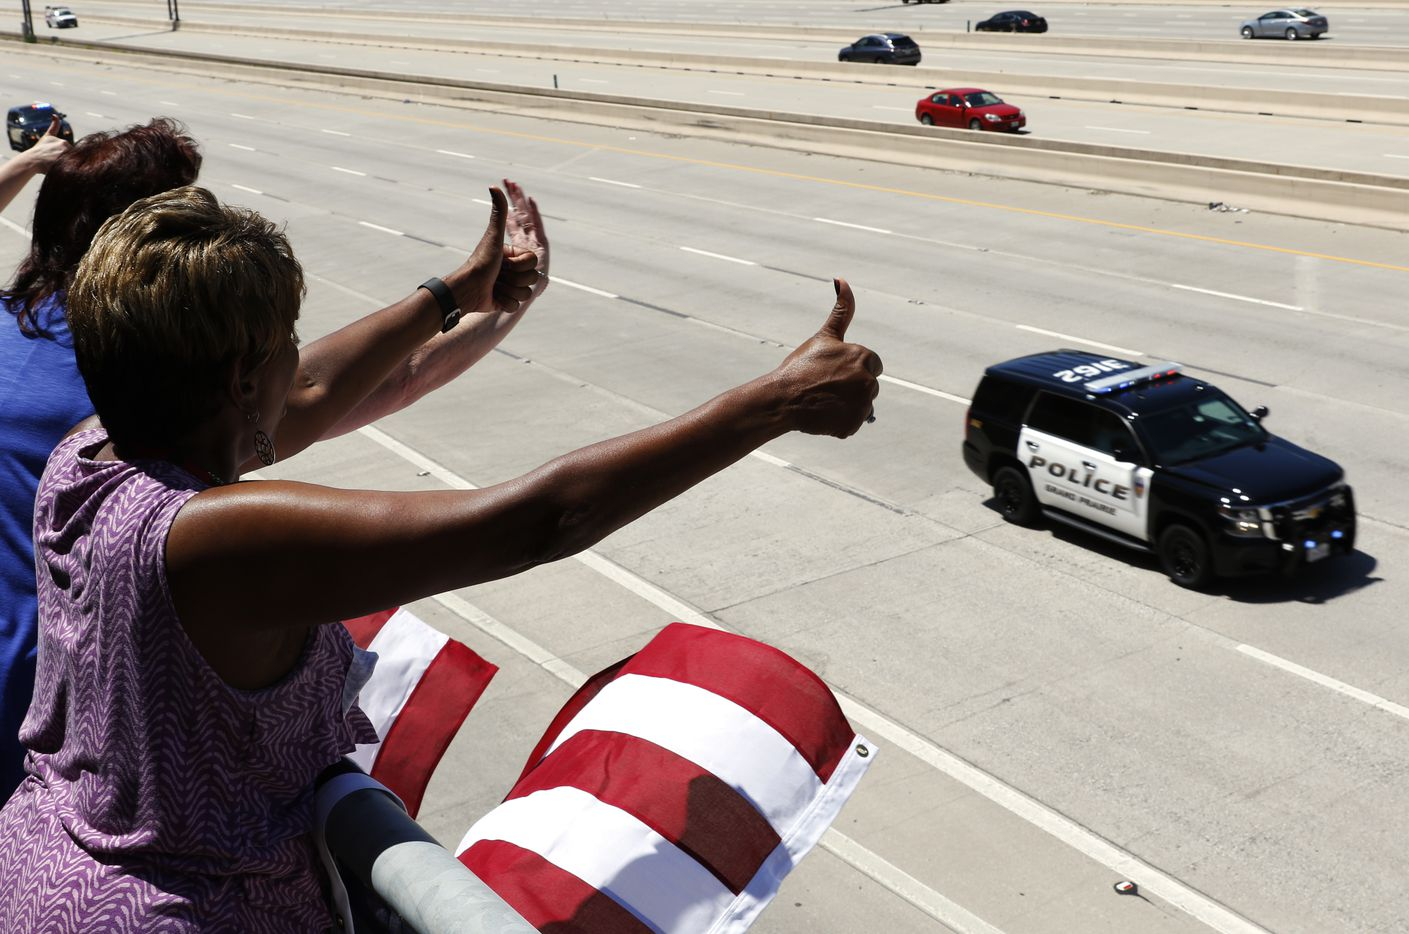 Sandra Forte and other employees from SBB Management Company wave and give thumbs up to passing police vehicles as they proceed east on Interstate 635 to Restland Funeral Home.